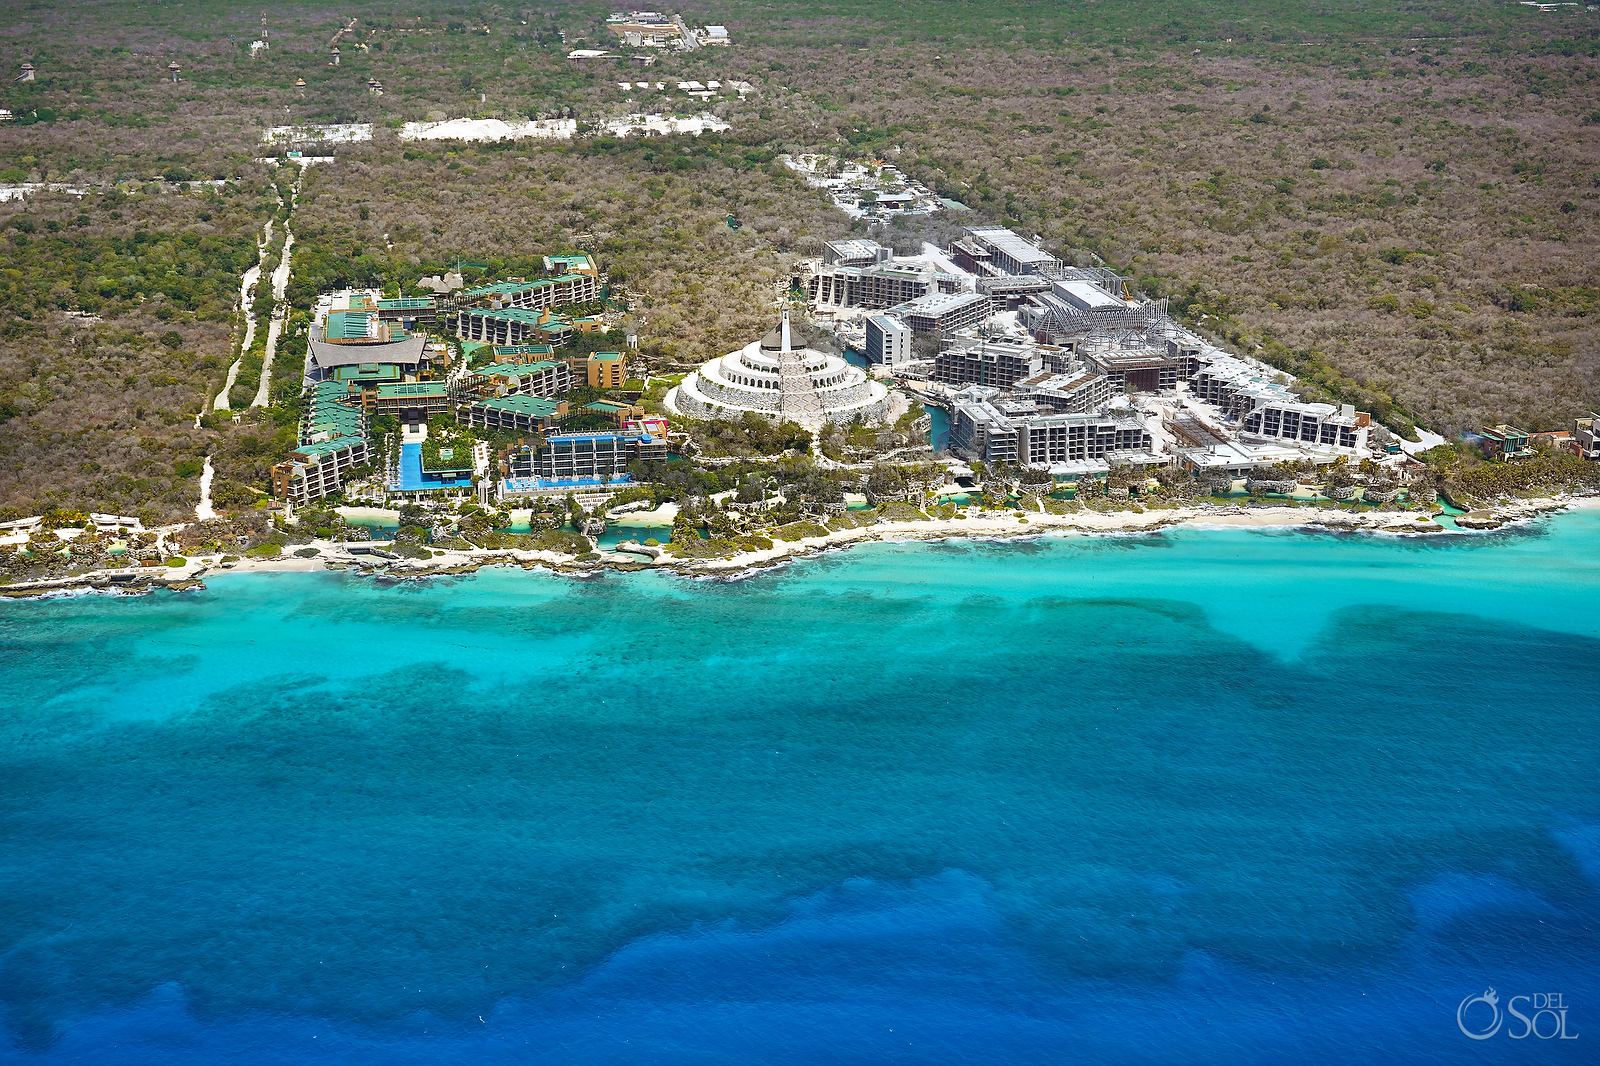 Hotel Xcaret Mexico Cancun area aerial photography tour